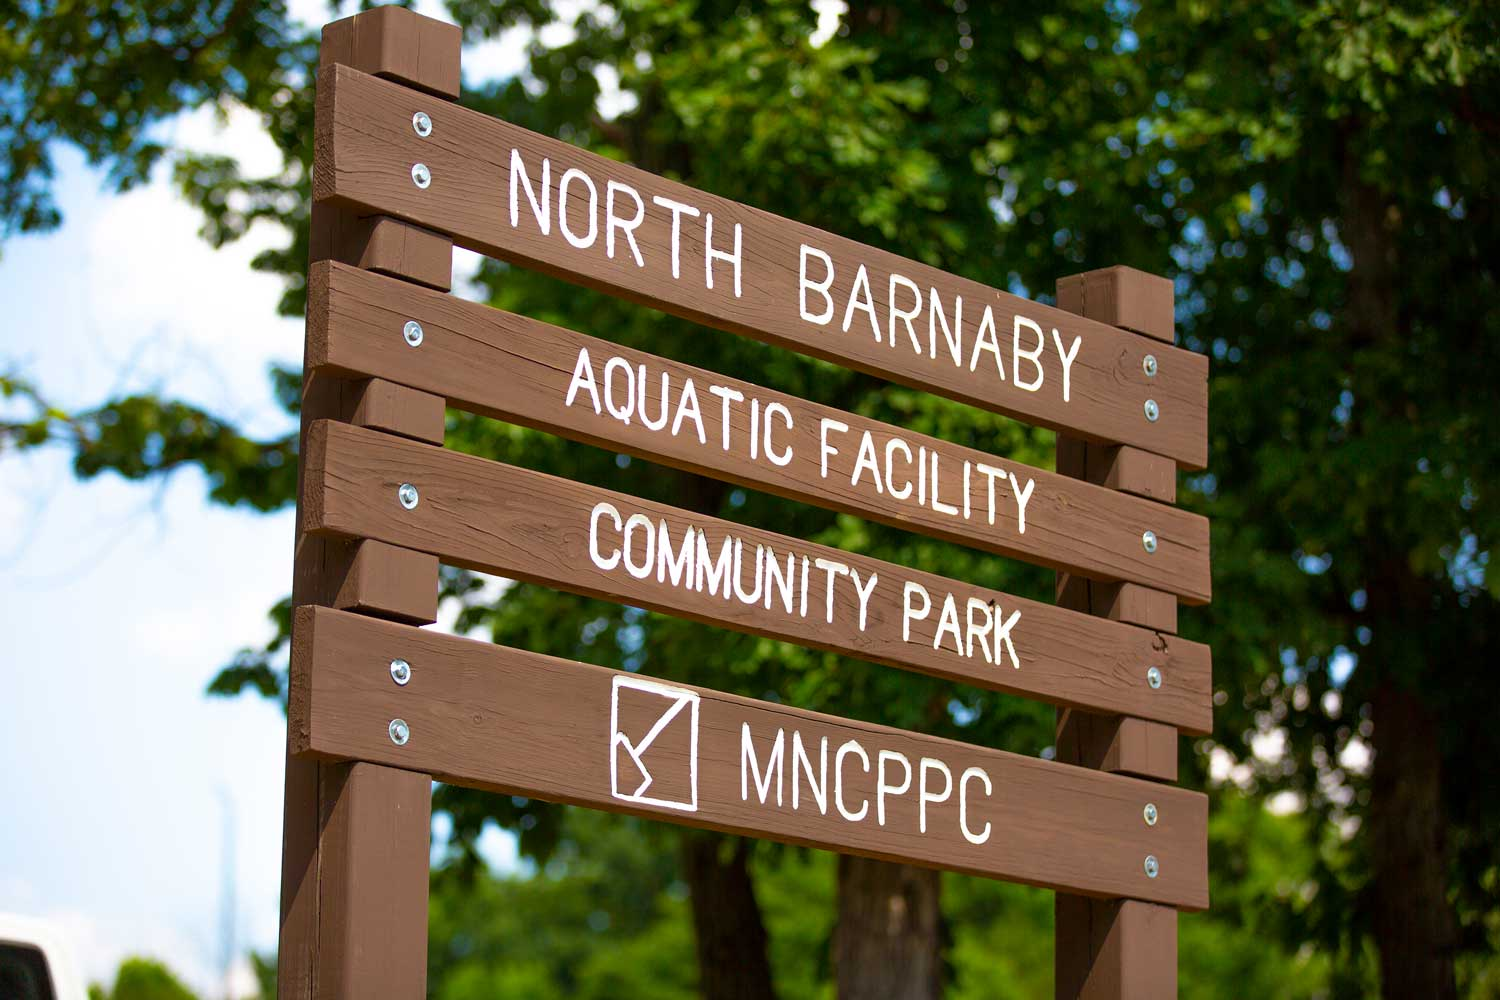 North Barnaby Splash Park is 8 minutes from Top of the Hill Apartments in Temple Hills, MD